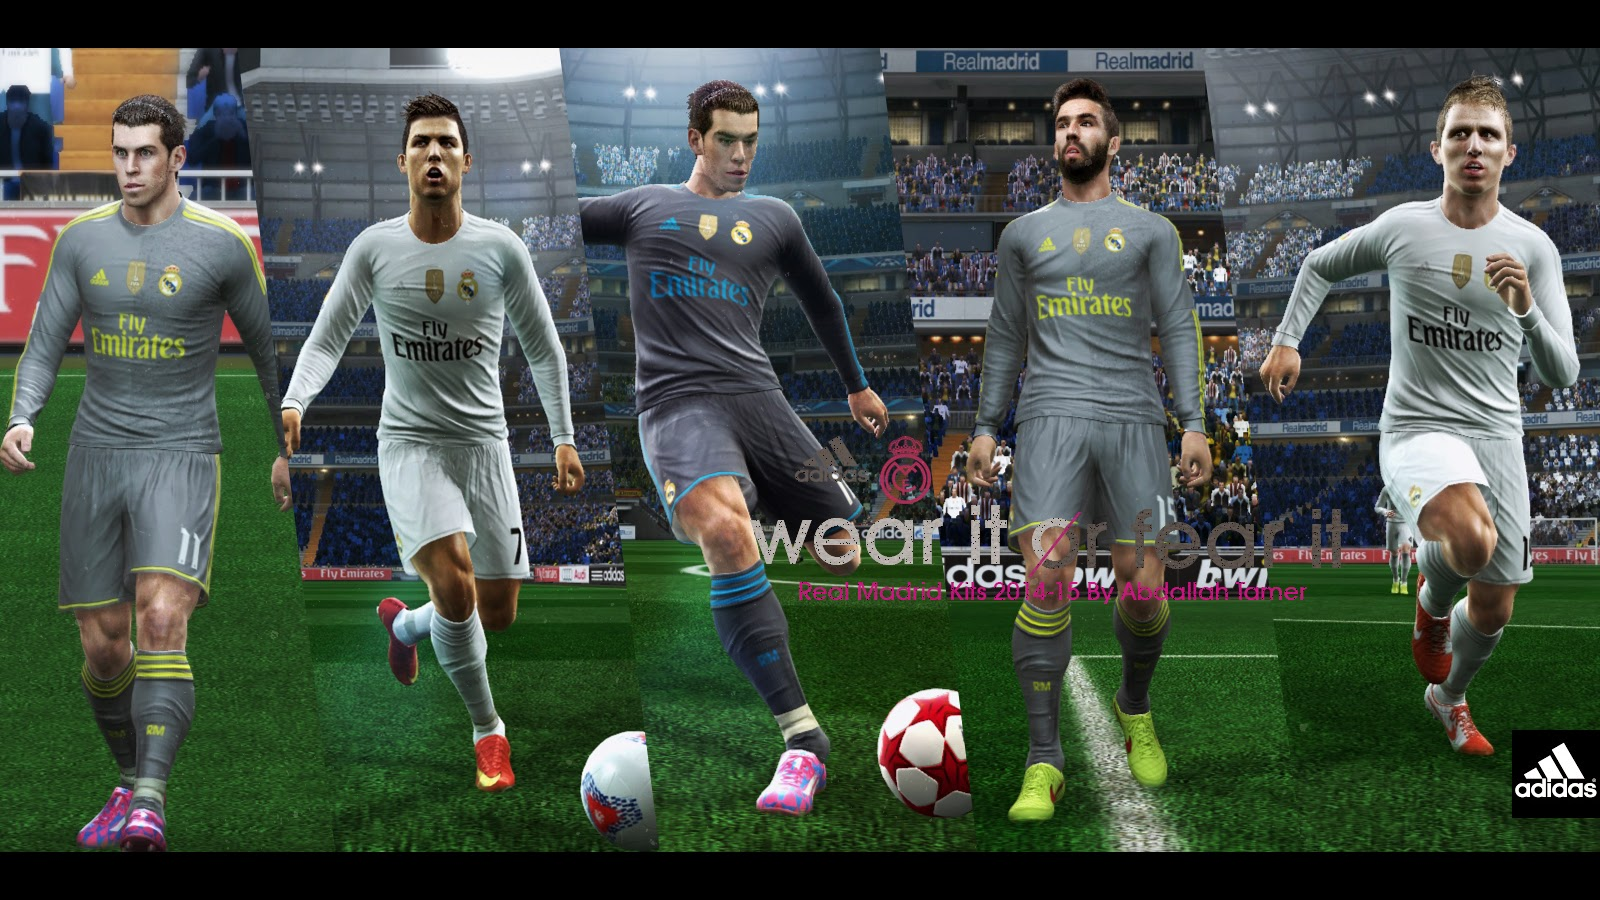 PES 2013 PC  Uniformes Techfit 2015 2016 do Real Madrid com Badge de  Campeão do Mundial 7016b4acd8502